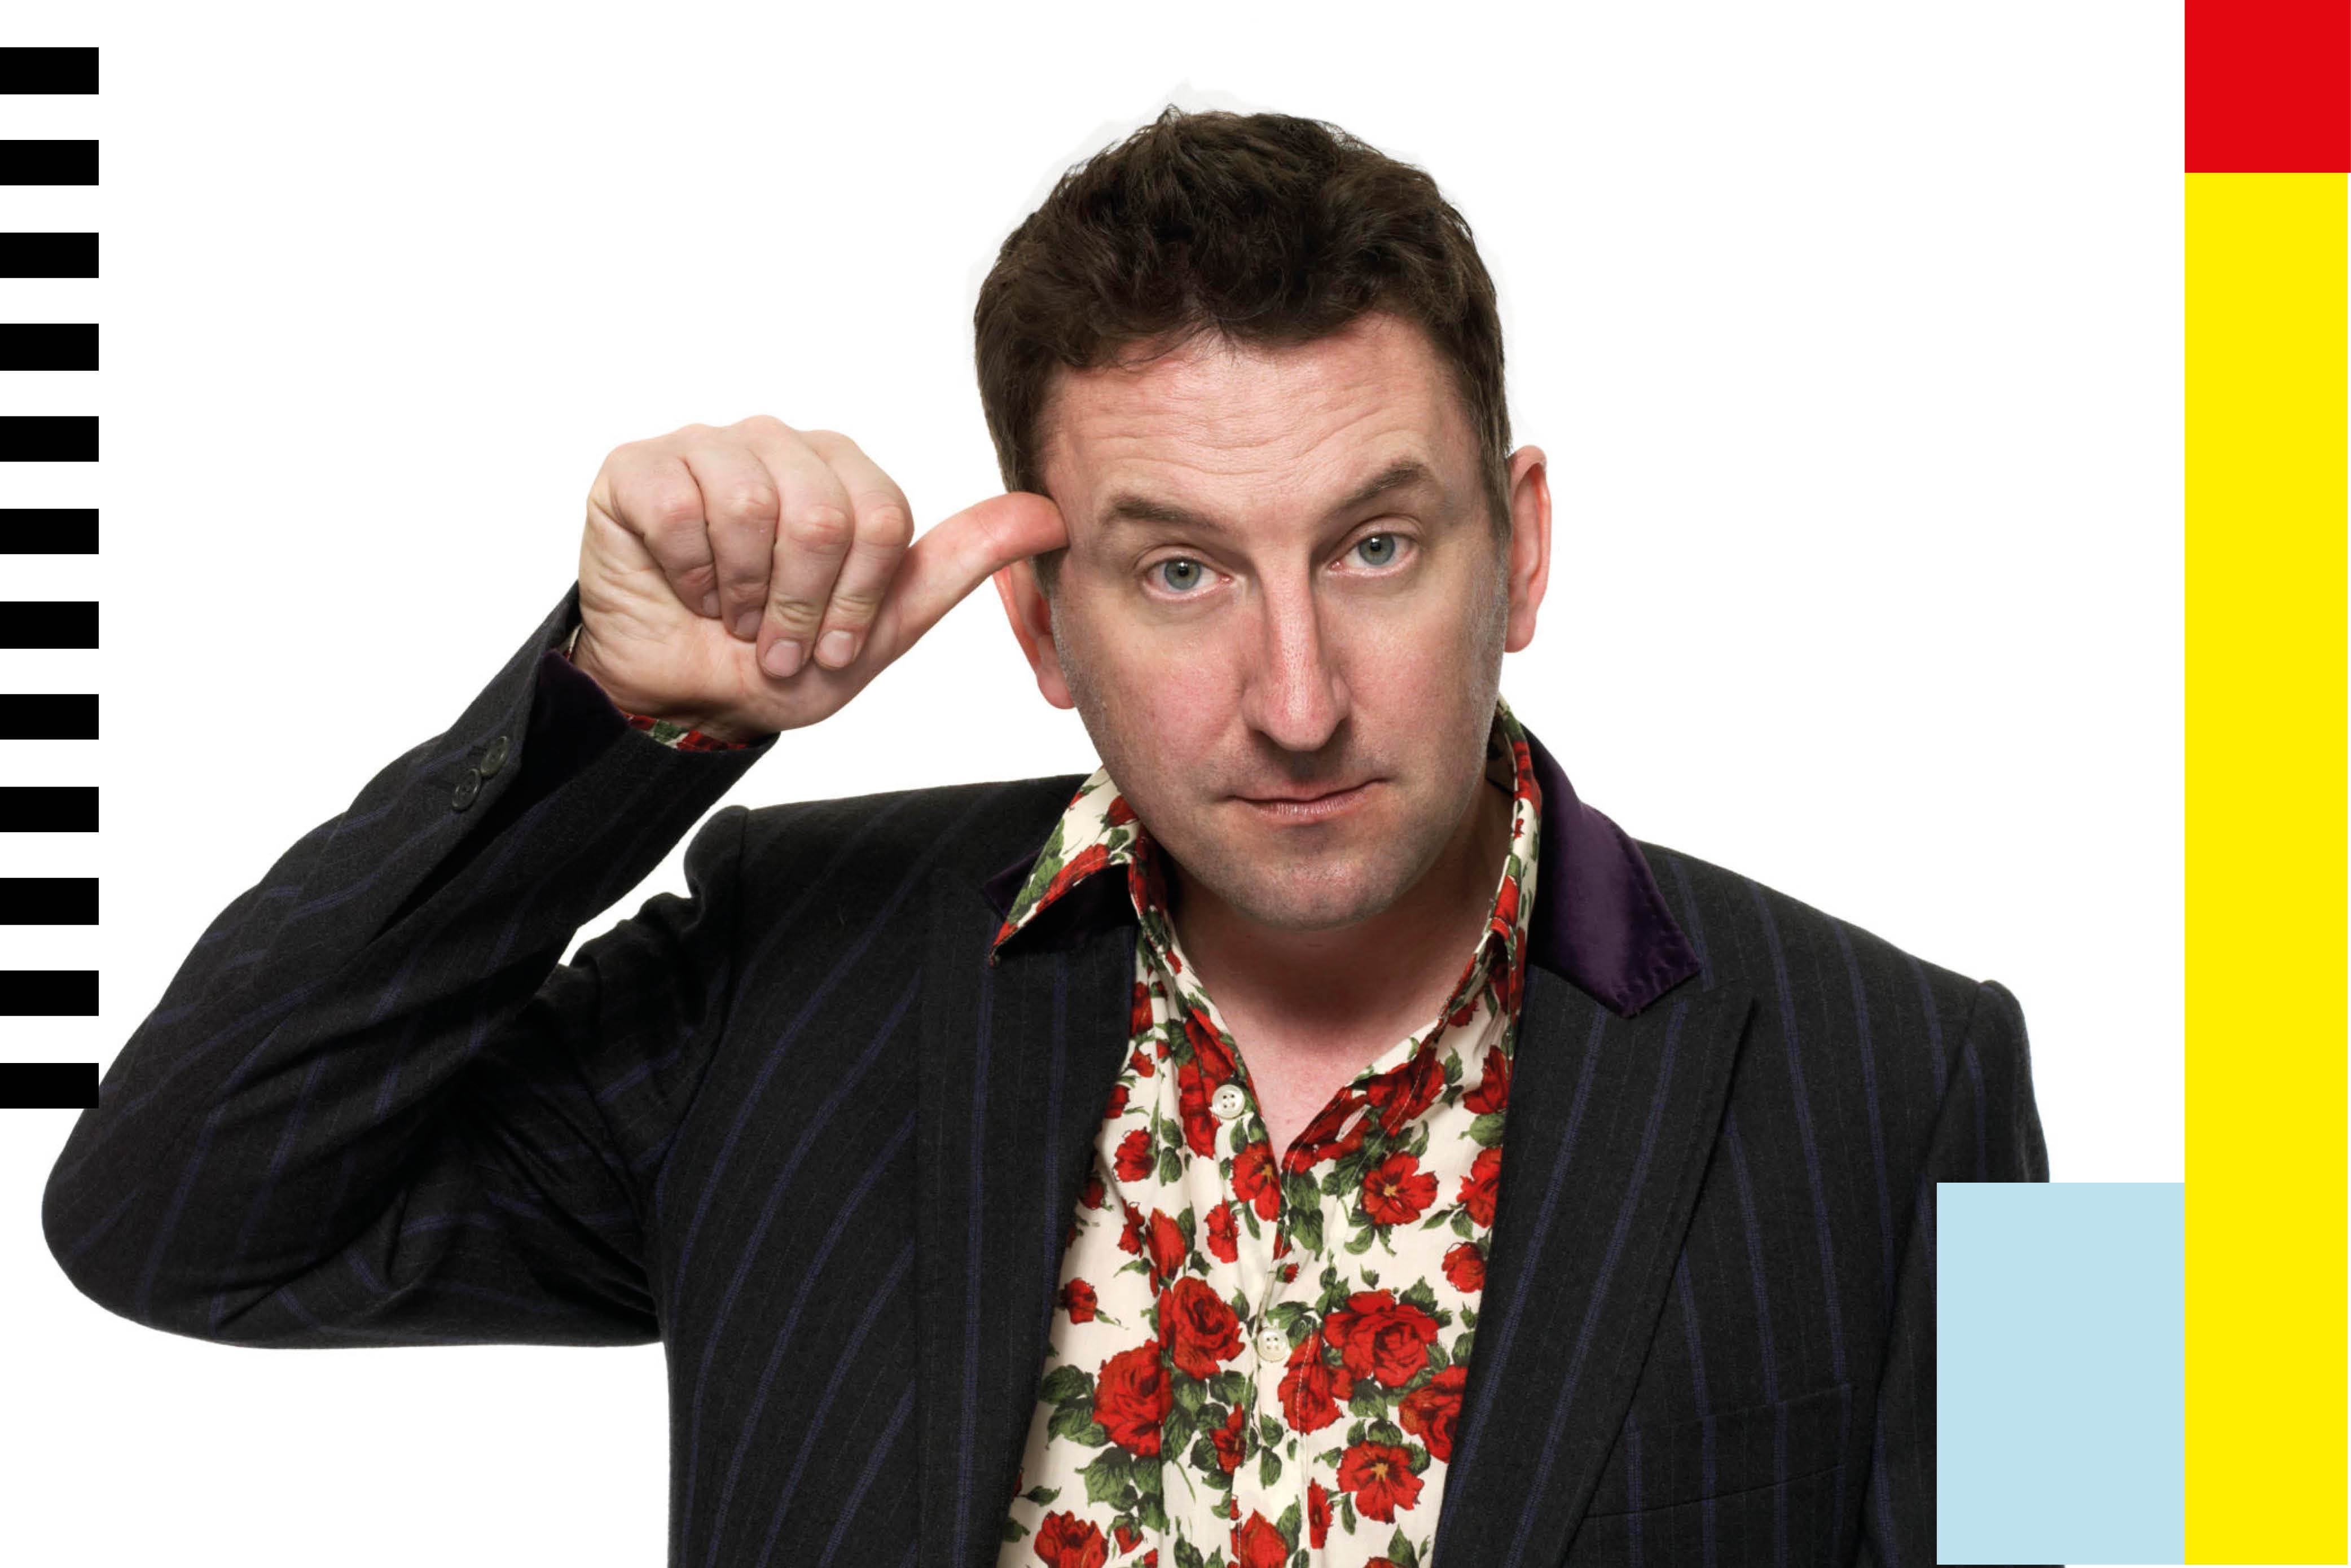 Lee Mack on the art of quick thinking